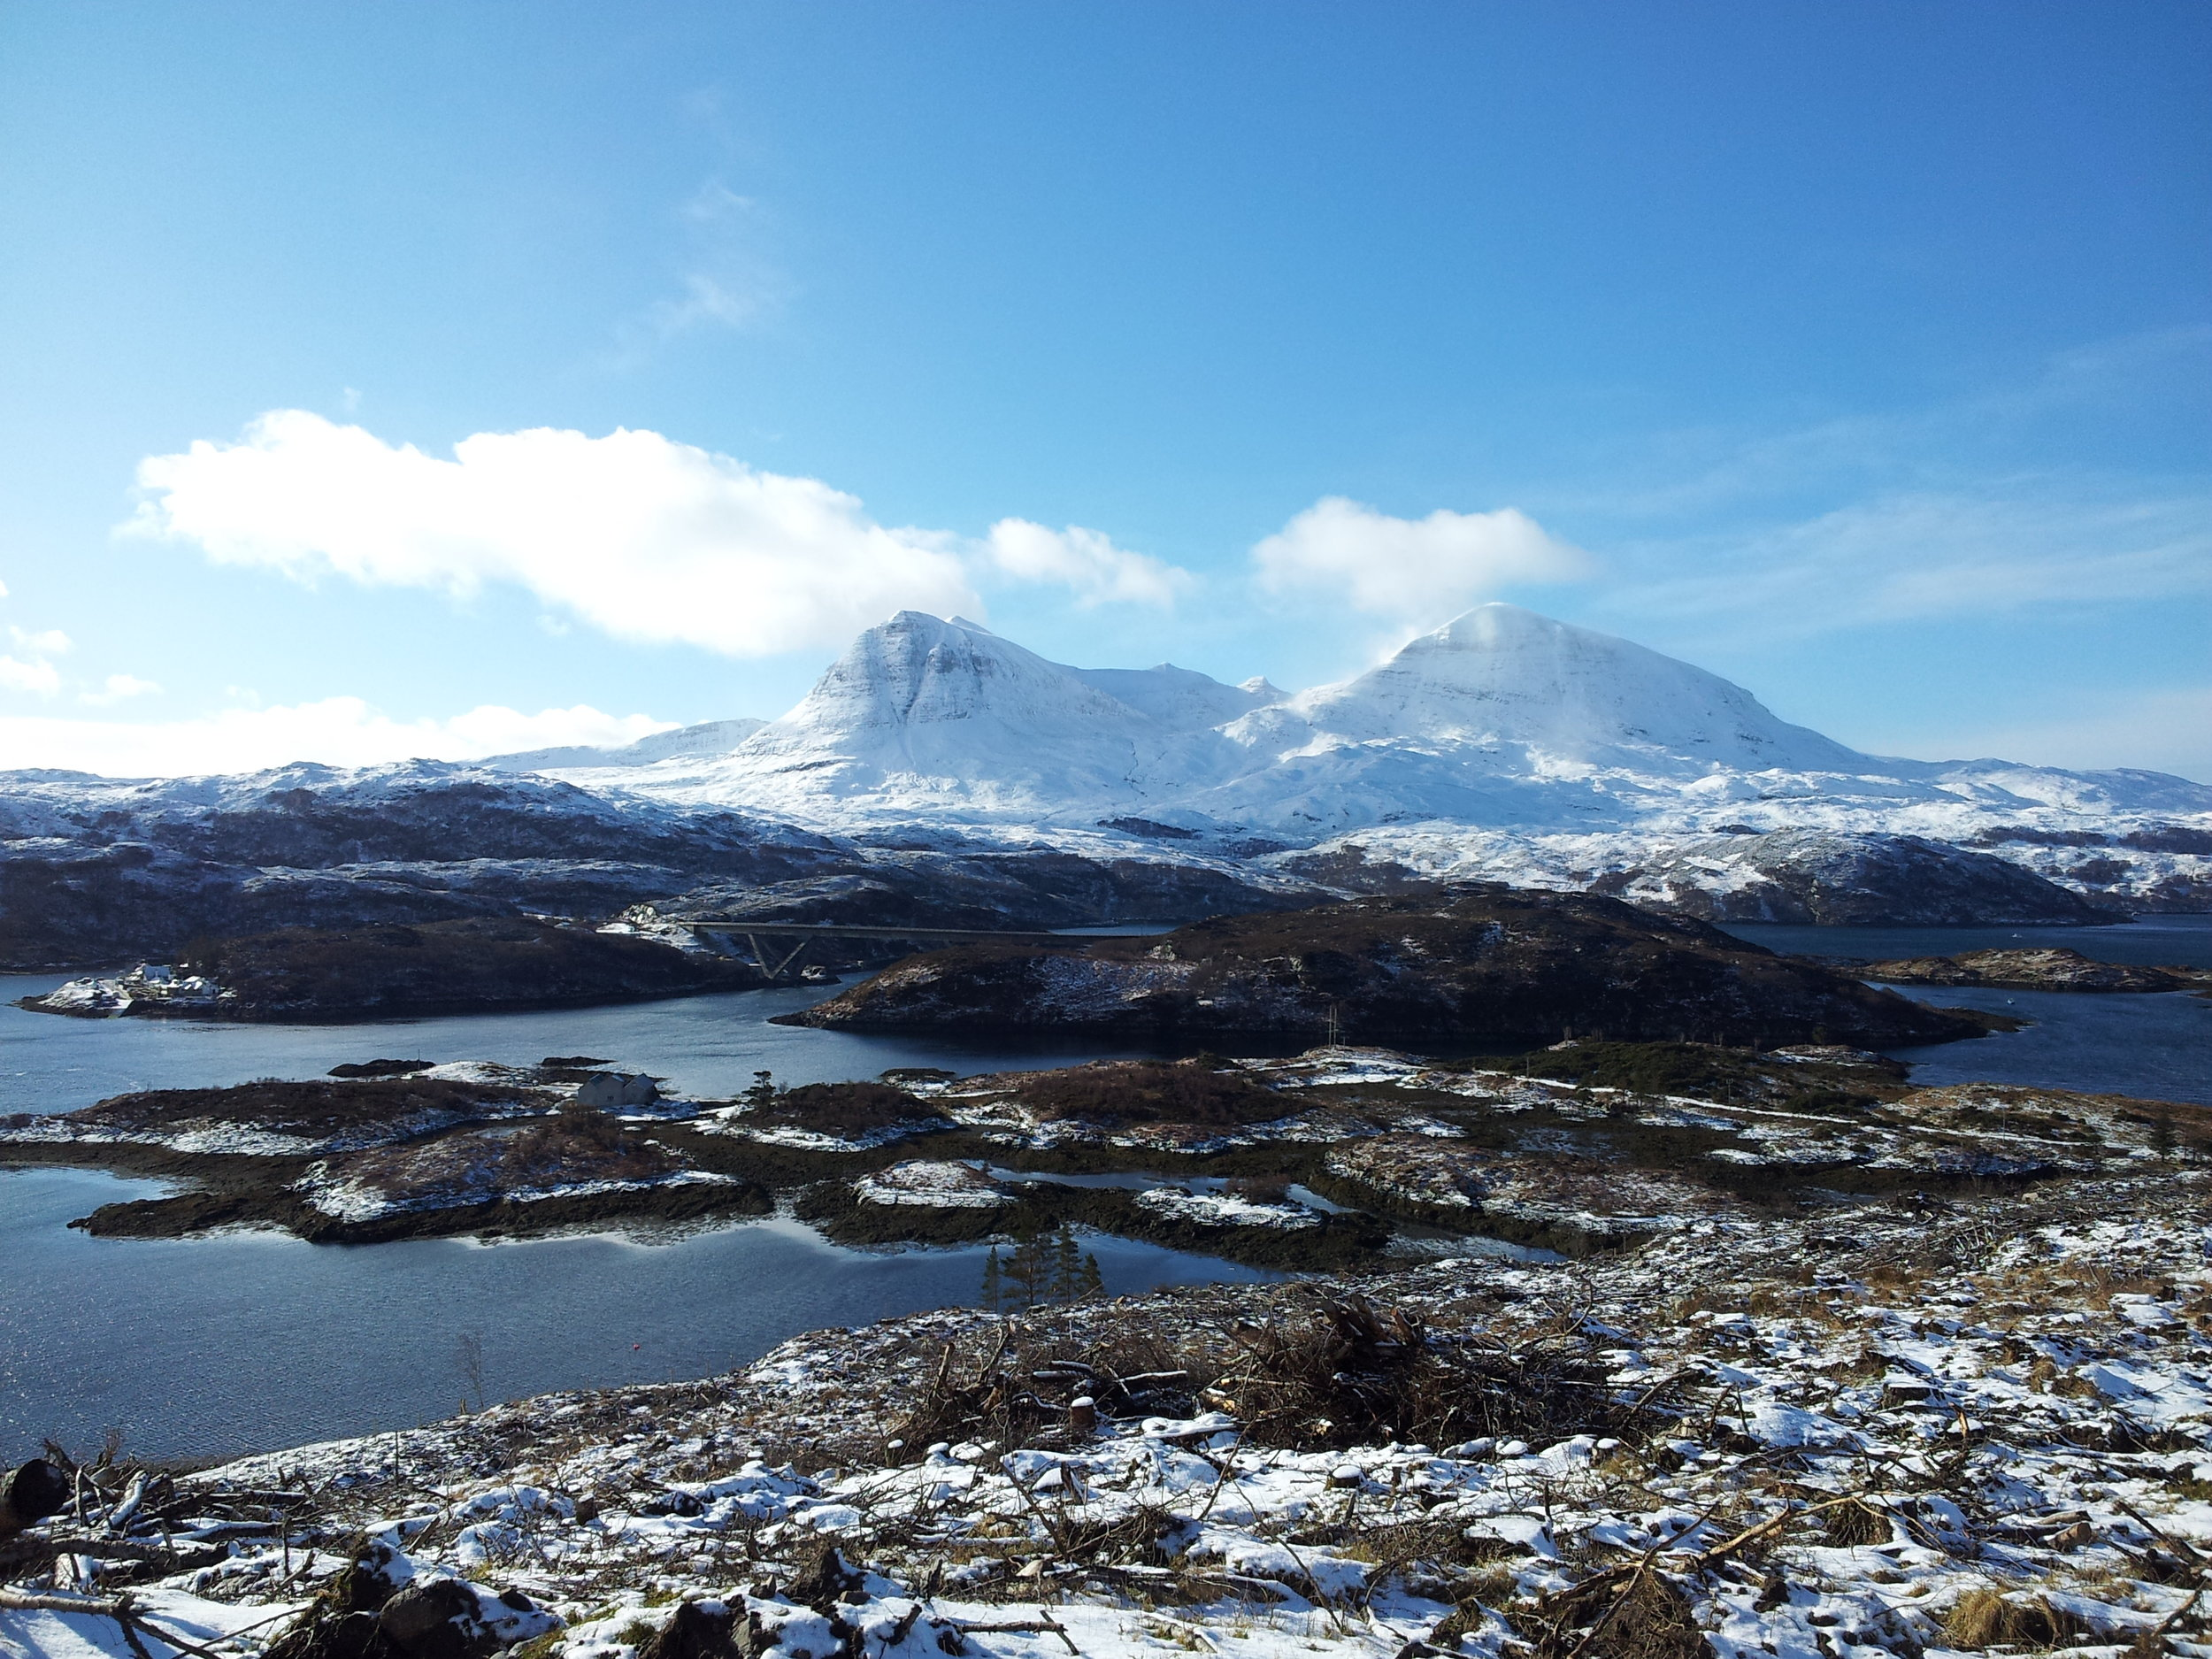 Quinag and Kylesku